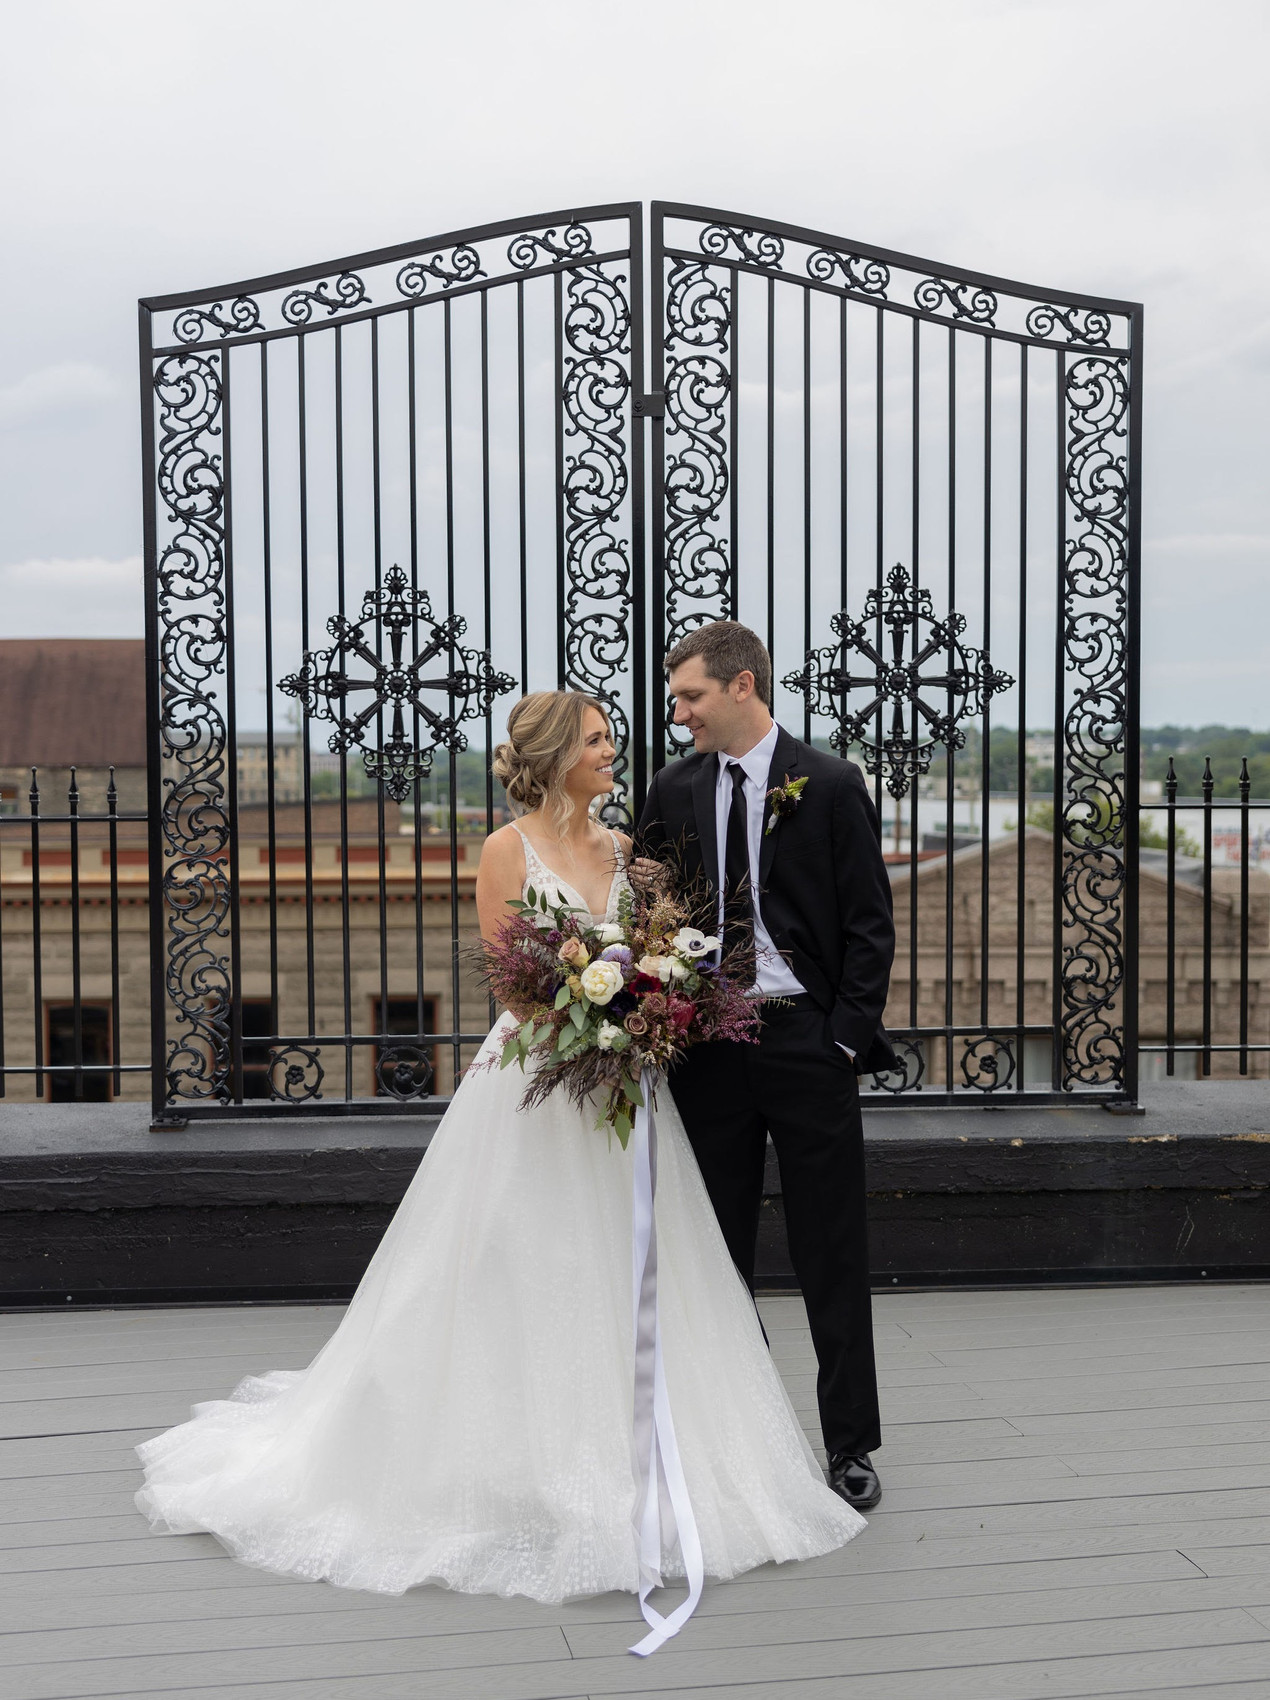 Bride and groom on rooftop in Rockford Illinois